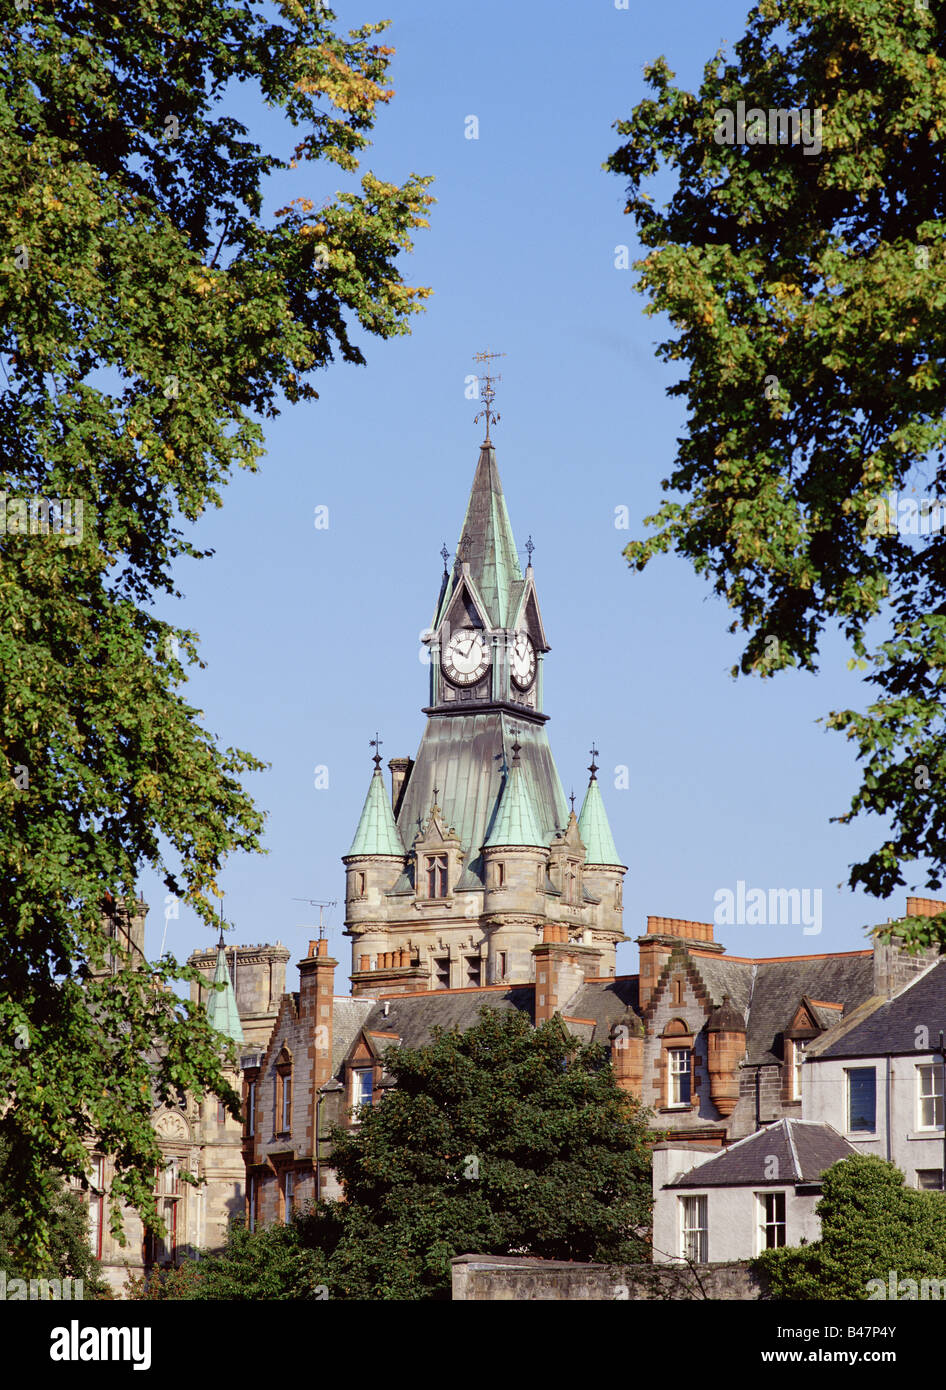 dh  DUNFERMLINE FIFE Town hall clock tower Stock Photo